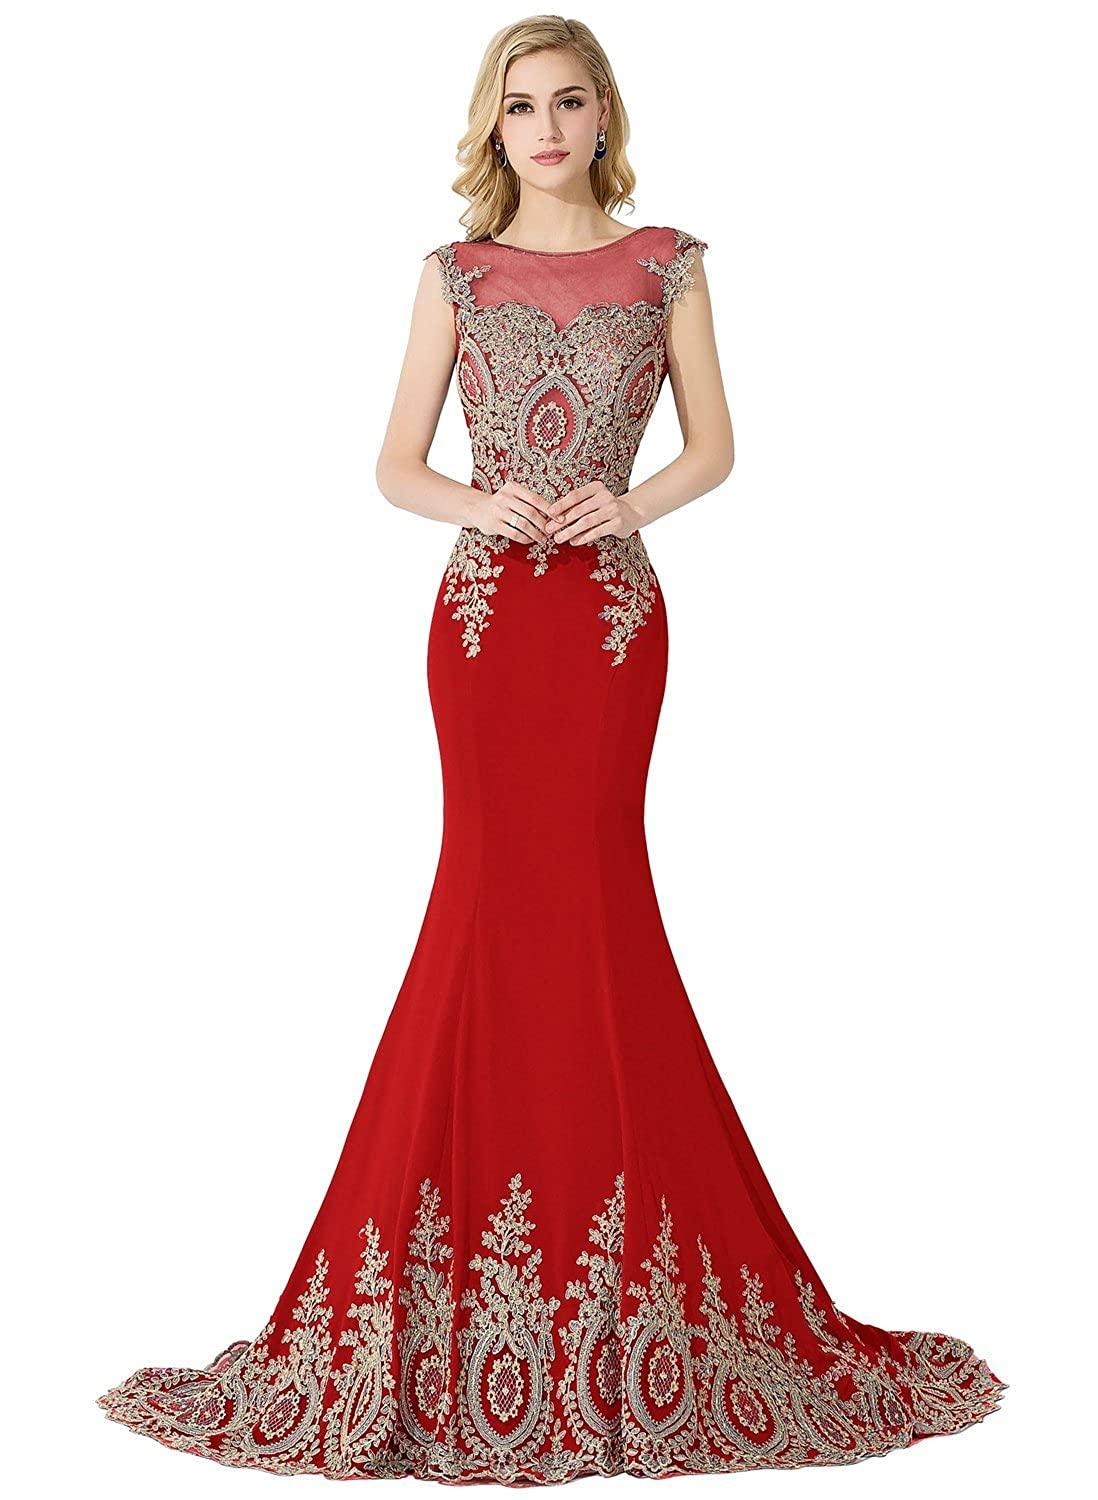 MisShow Women's Embroidery Lace Long Mermaid Formal Evening Prom Dresses